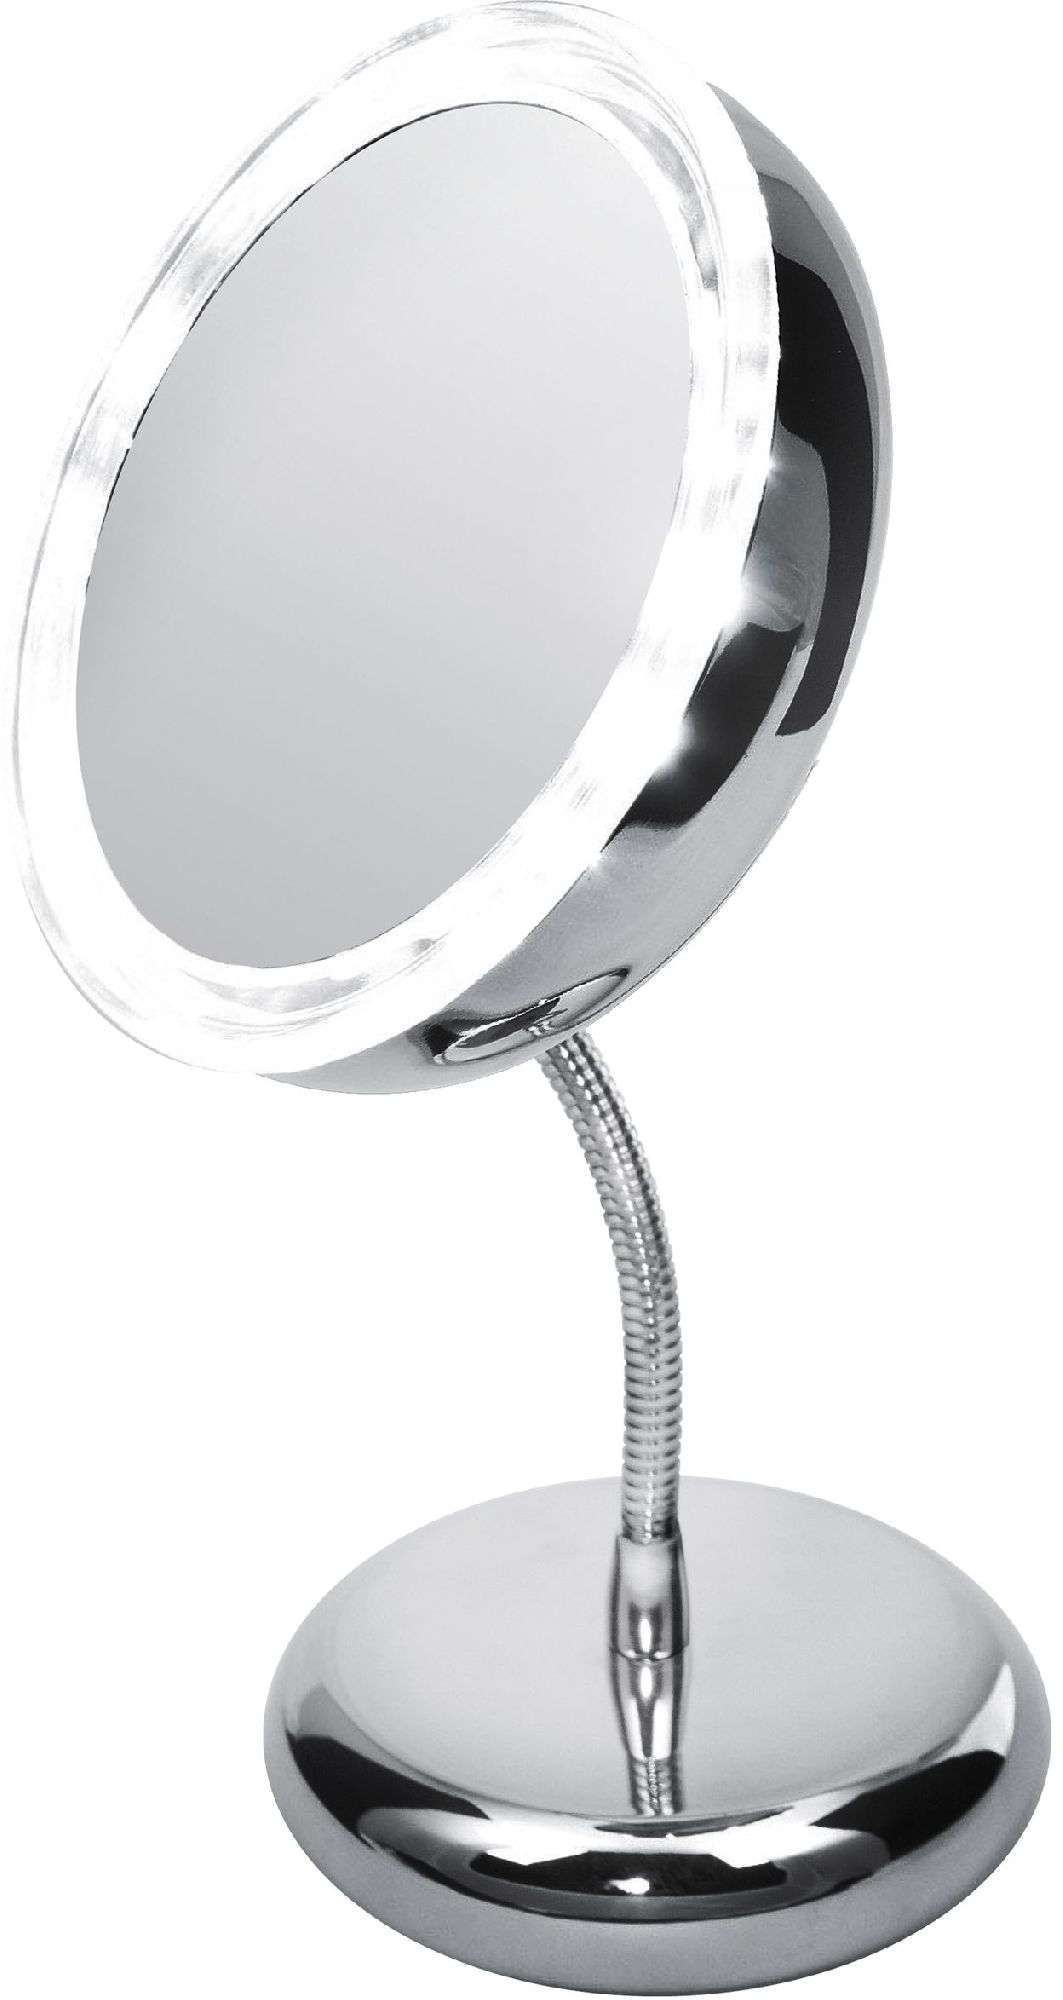 Adler Mirror, AD 2159, 15 cm, LED mirror, Chrome Spogulis